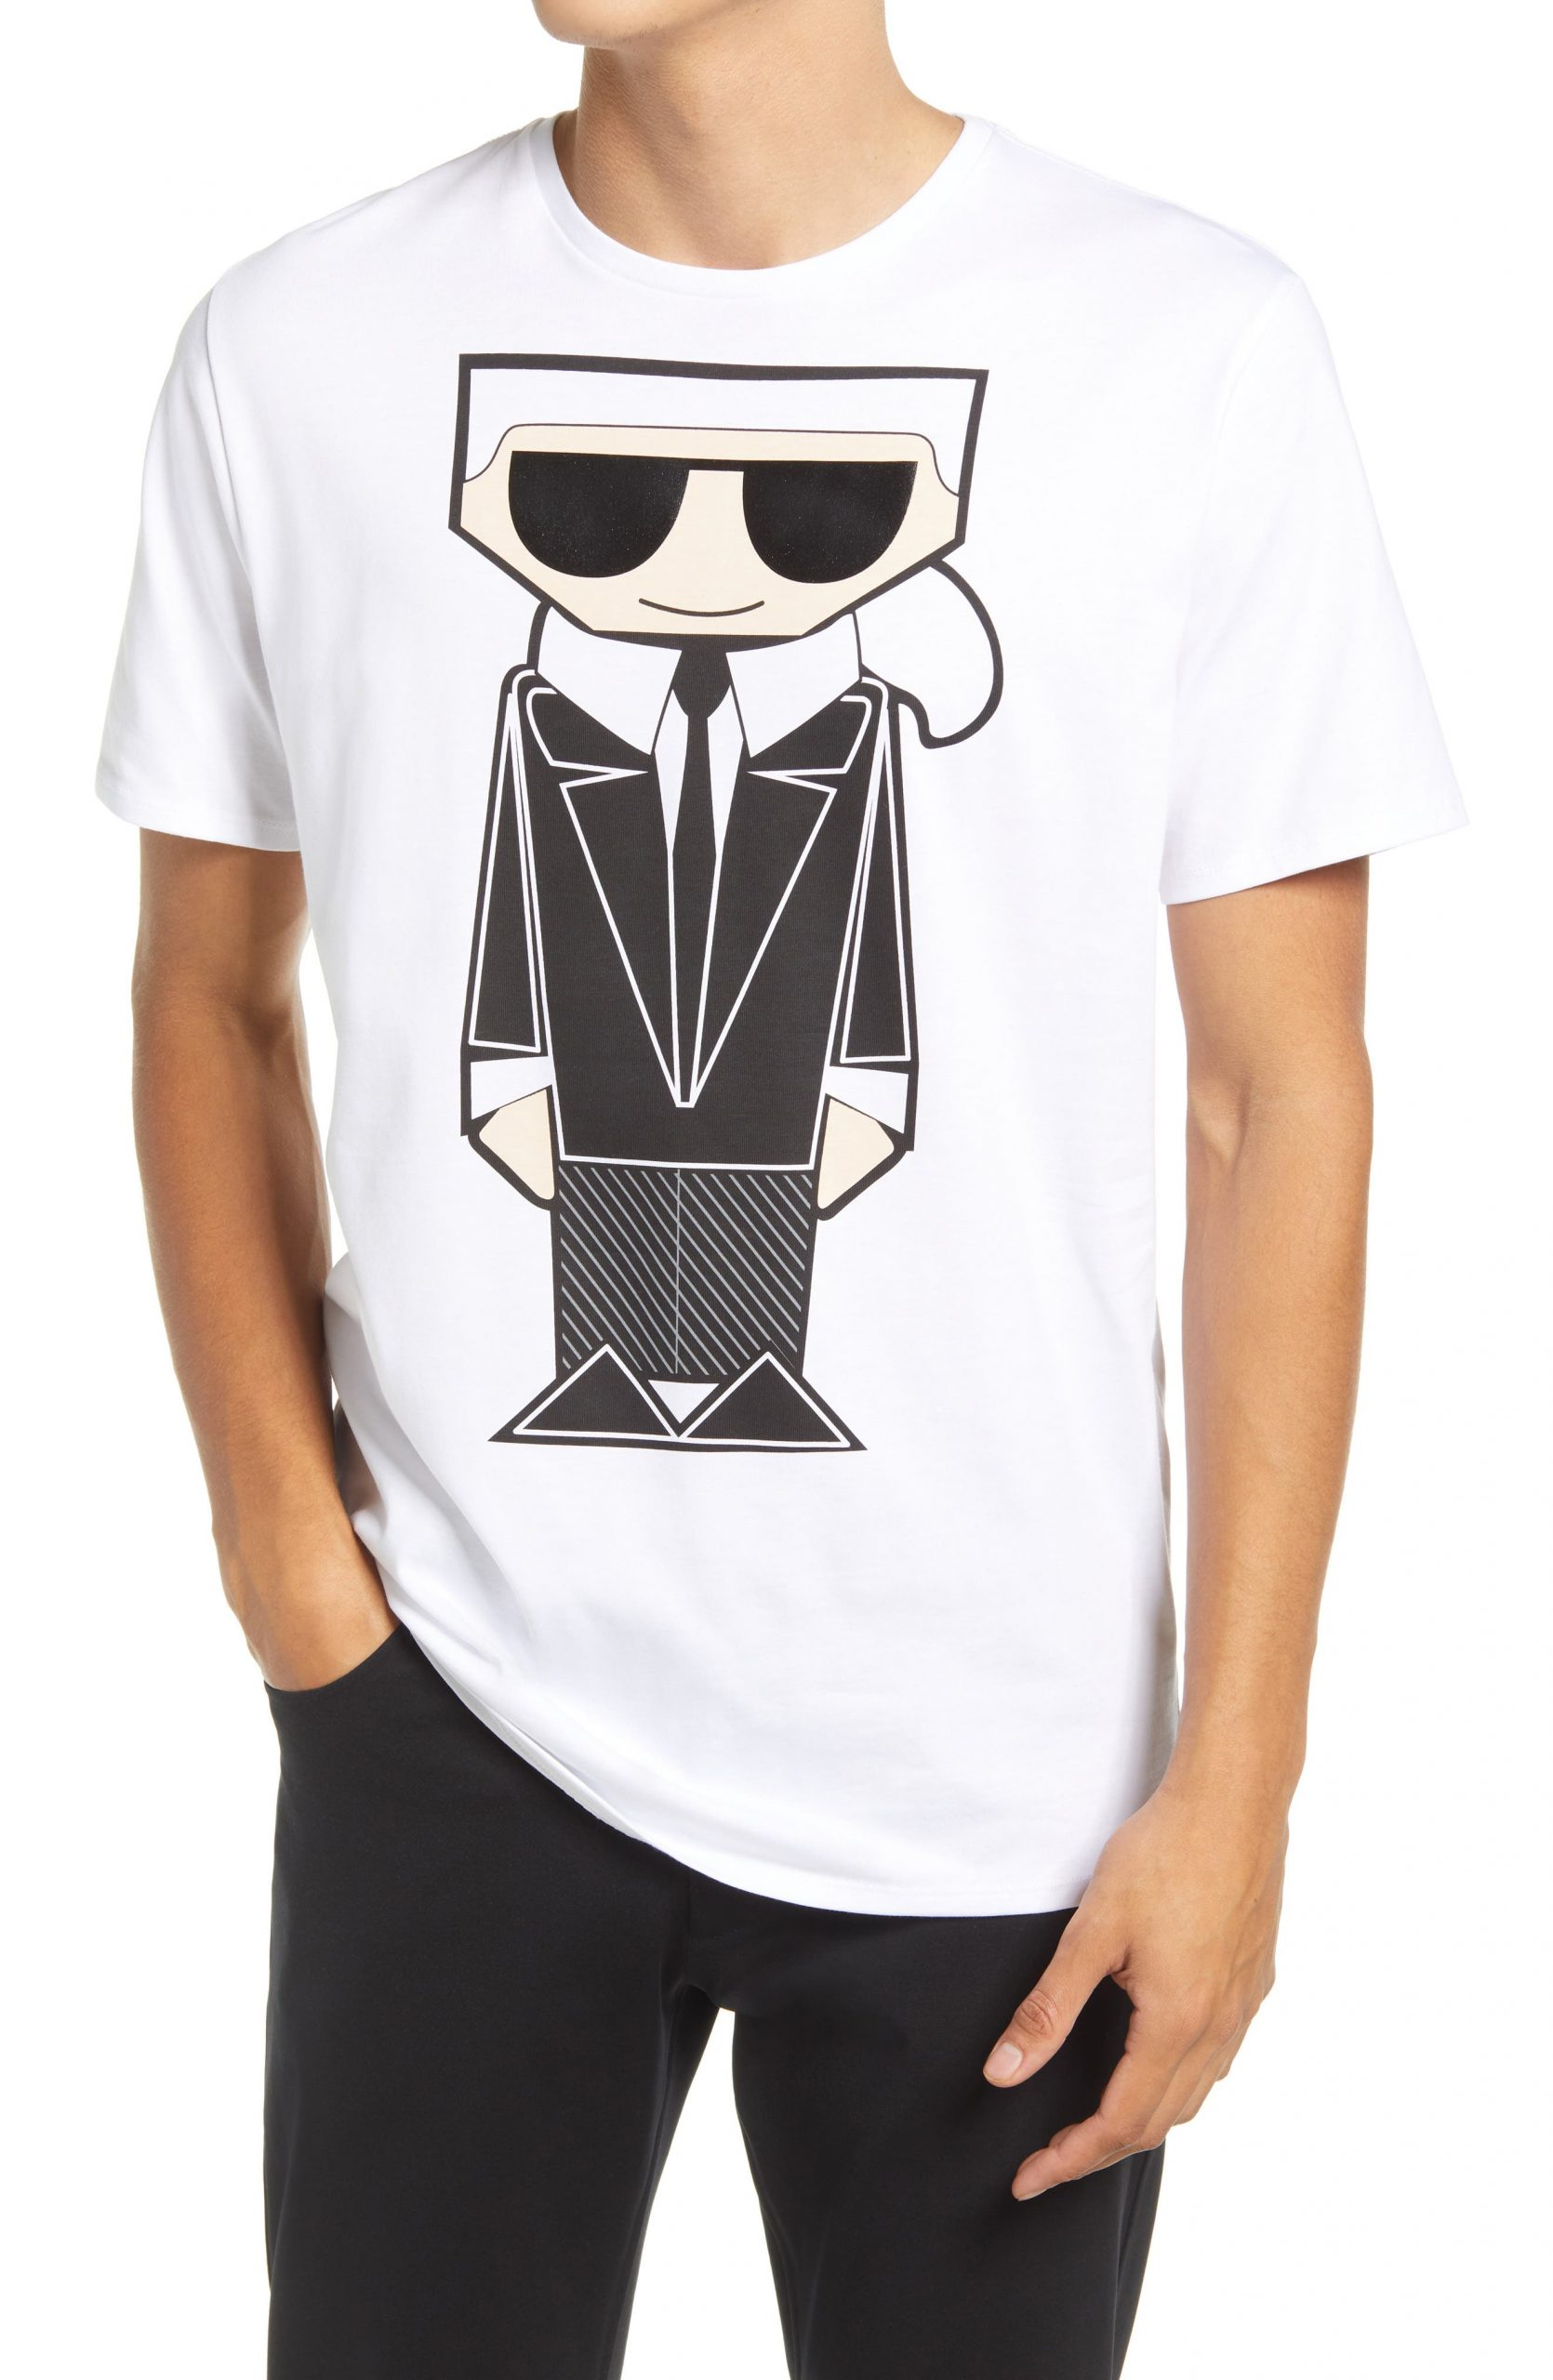 Karl Lagerfeld Paris Kocktail Karl Graphic Tee, Size Small in White at Nordstrom